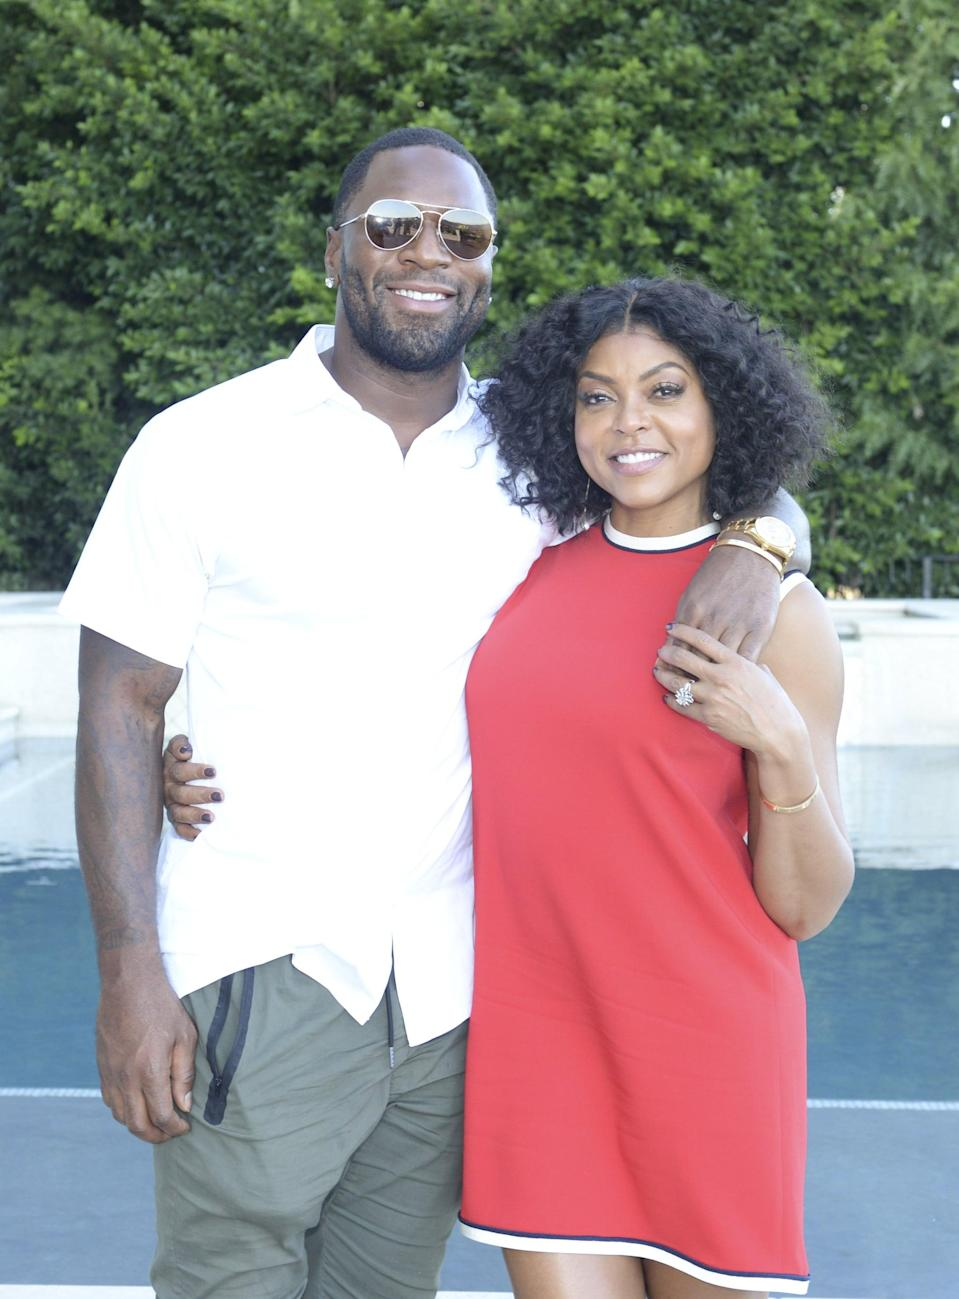 "<p>The actress <a href=""https://www.popsugar.com/celebrity/Taraji-P-Henson-Engaged-Kelvin-Hayden-44841170"" class=""link rapid-noclick-resp"" rel=""nofollow noopener"" target=""_blank"" data-ylk=""slk:announced her engagement on Instagram"">announced her engagement on Instagram</a> with an adorable post about the proposal in May 2018. ""I said yes y'all!!!"" she wrote. ""He started with the Cartier love bracelet BUT that was my #Mothersday gift and then he dropped to his knee and I almost passed out!!! 😩😩😂😂😂#sheisofficiallyoffthemarket and she is sooooooooooooo HAPPY!!!!!! #GODIS 💍💋💋💋""</p>"